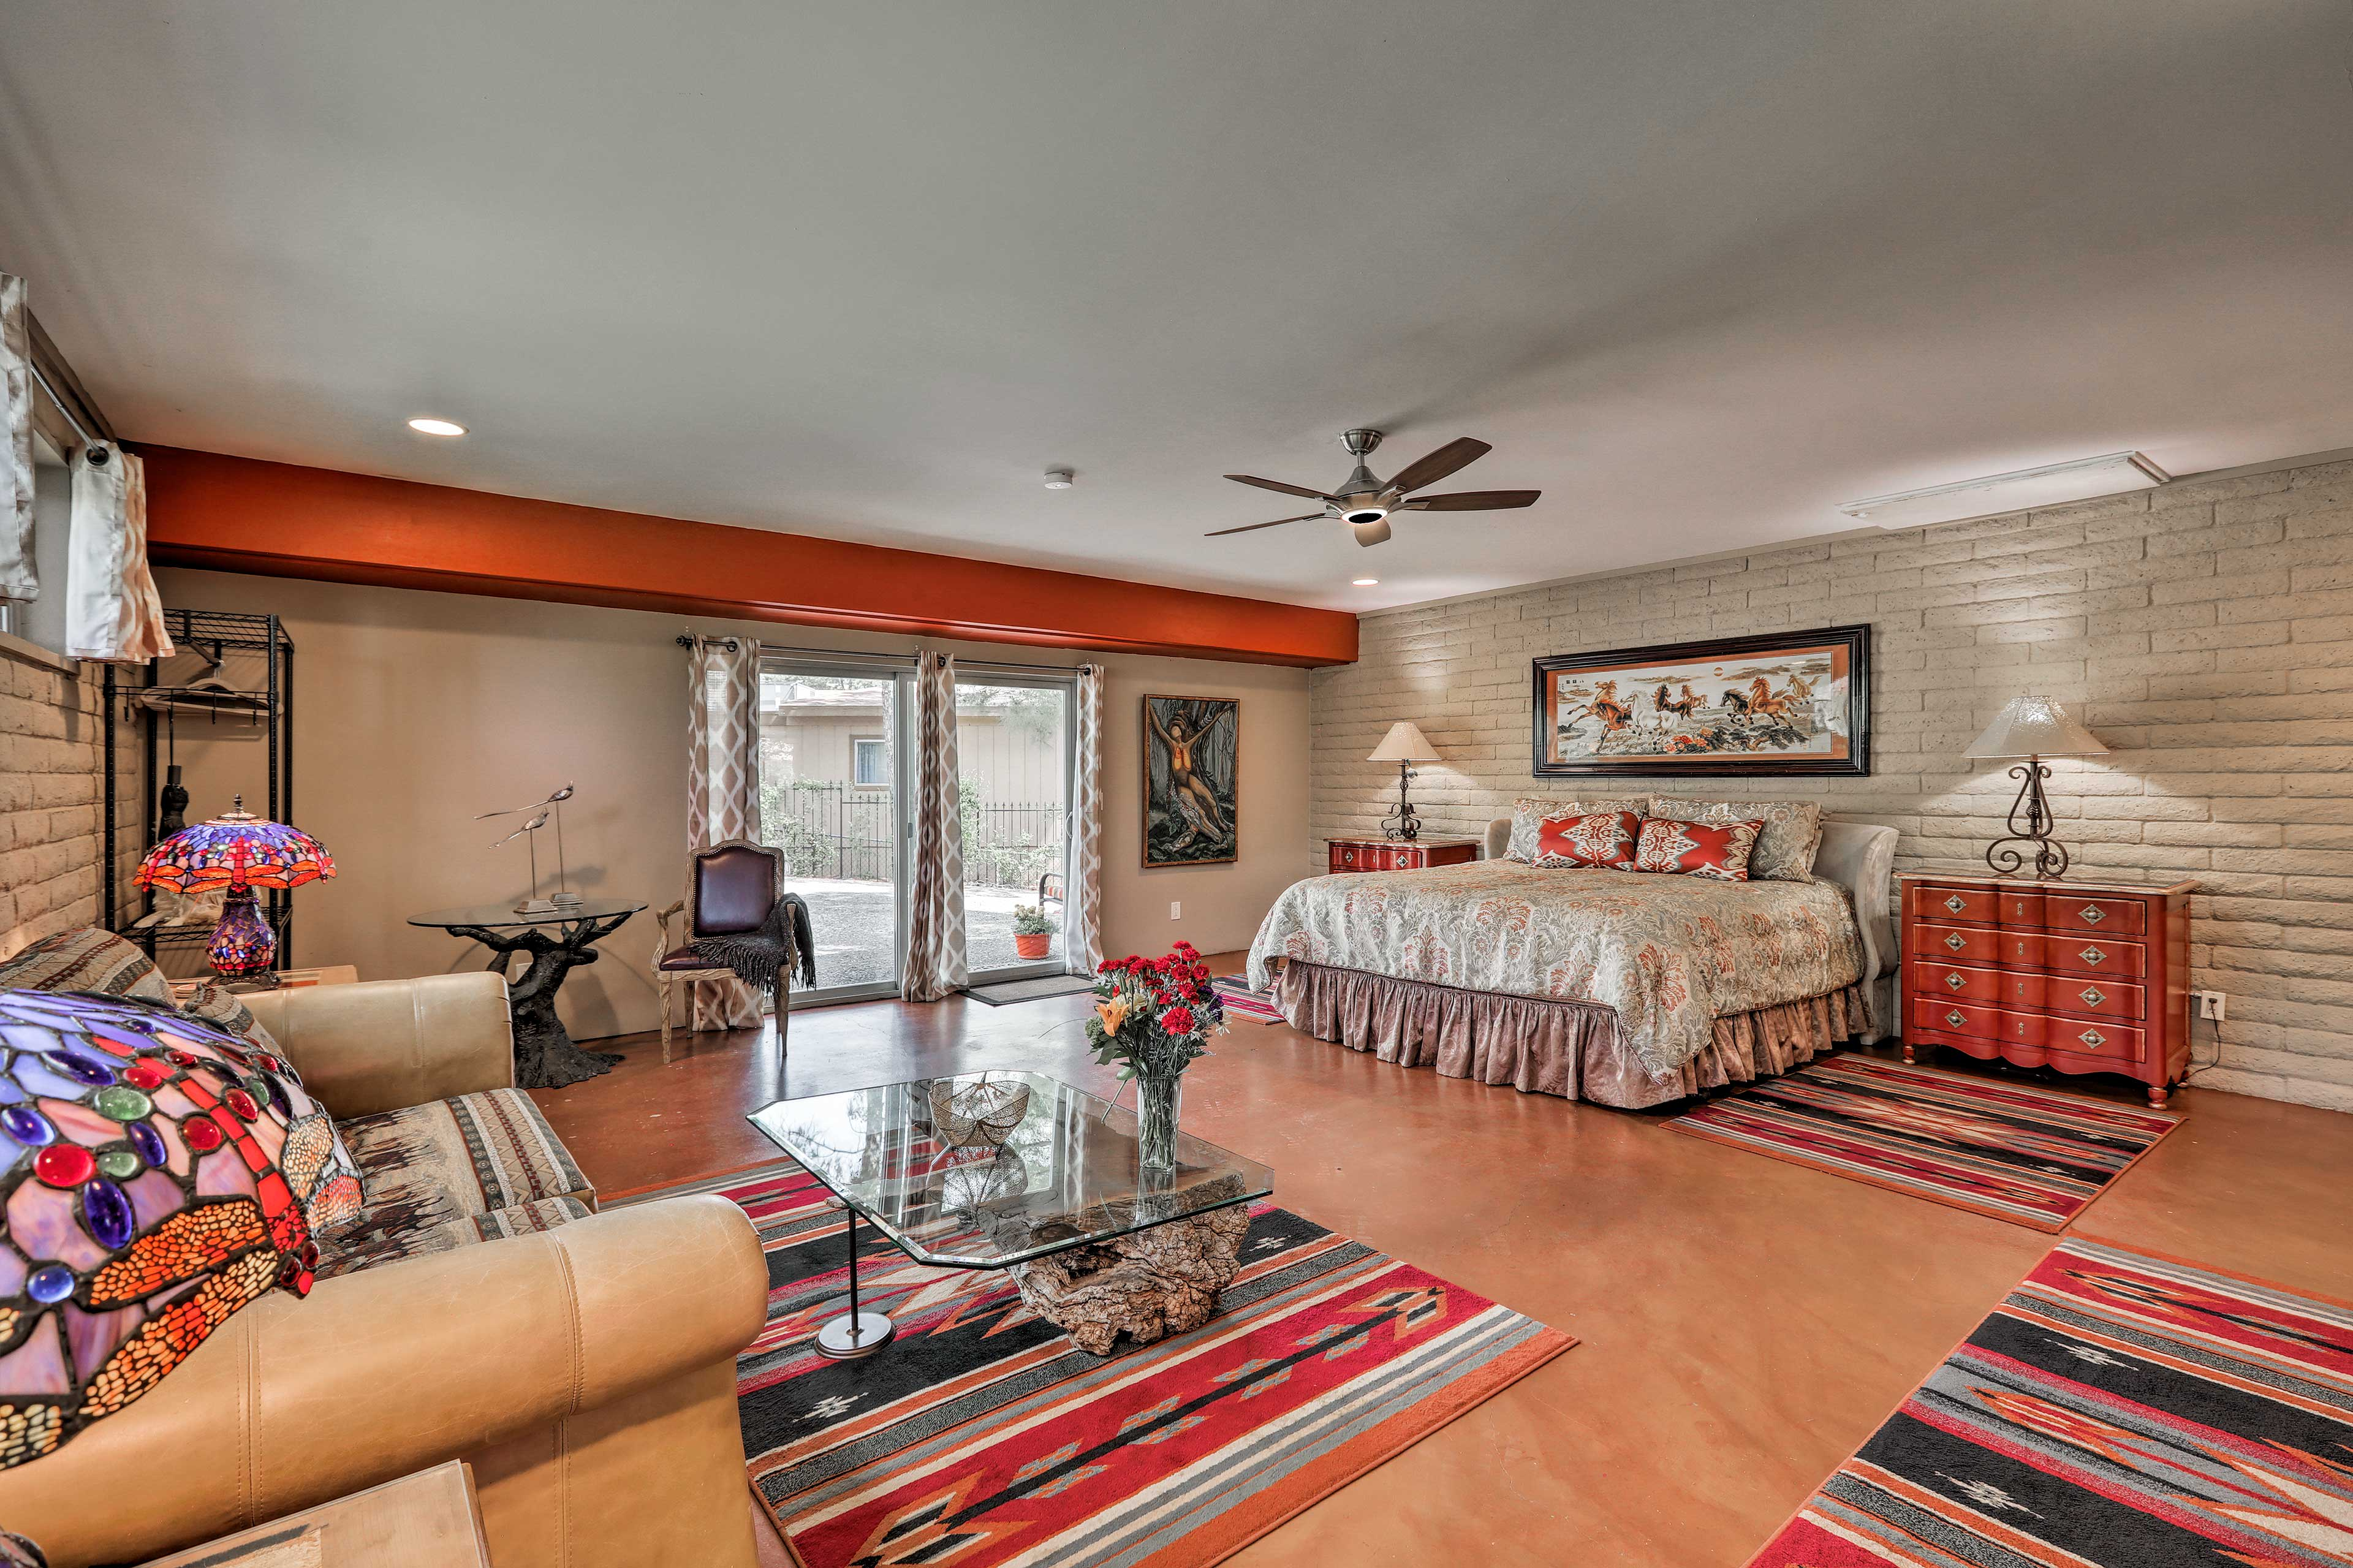 Escape to this unique vacation rental for a magnificent Sedona holiday!